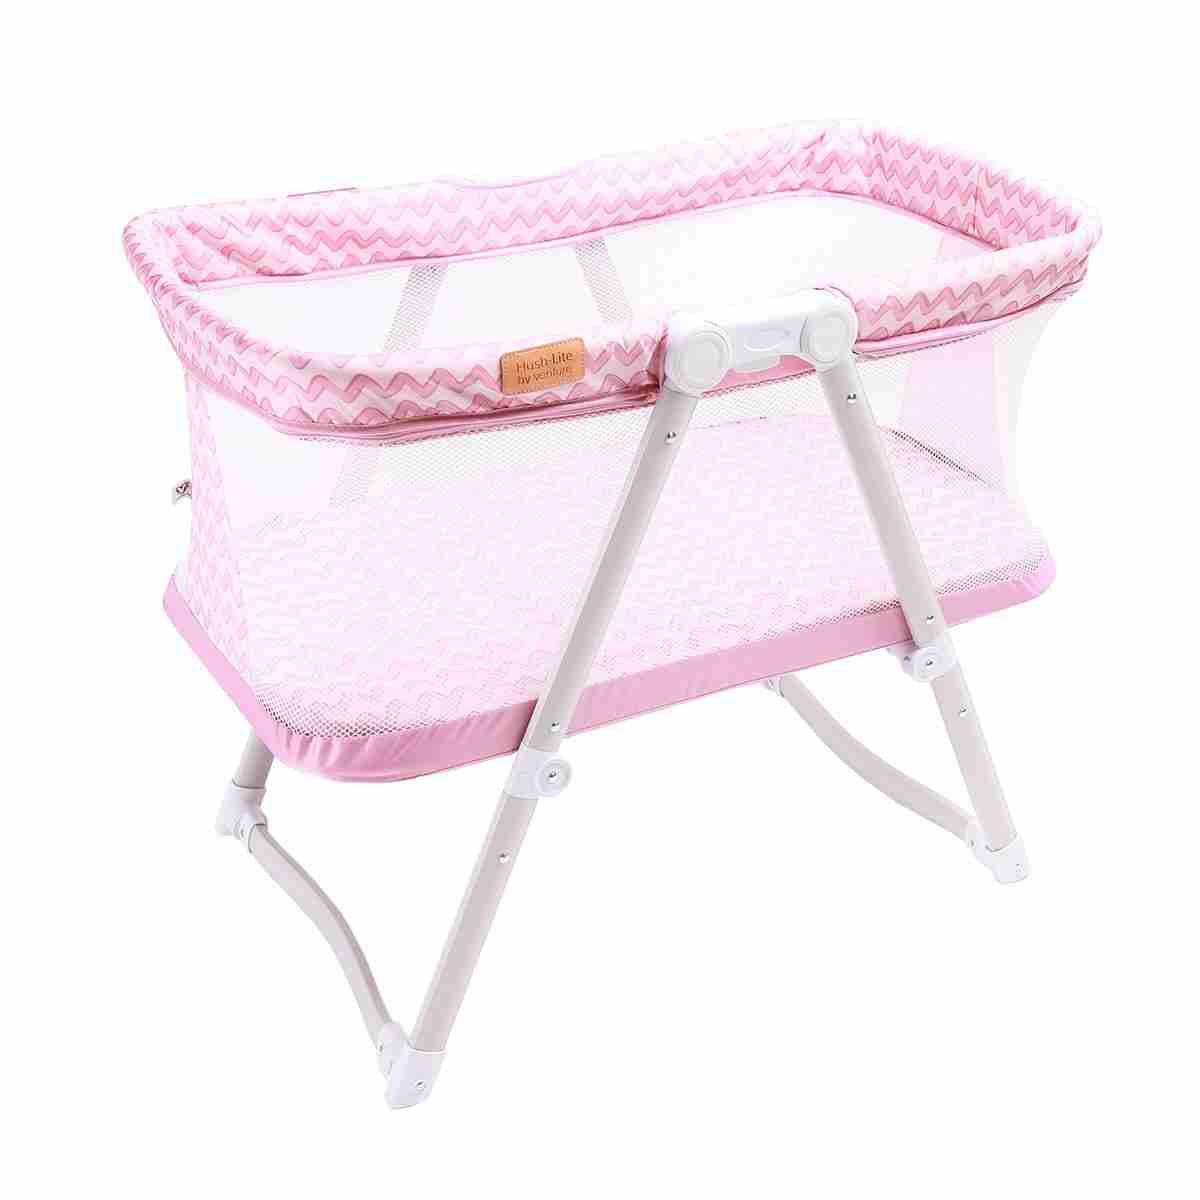 stylish travel crib in popping pink colour